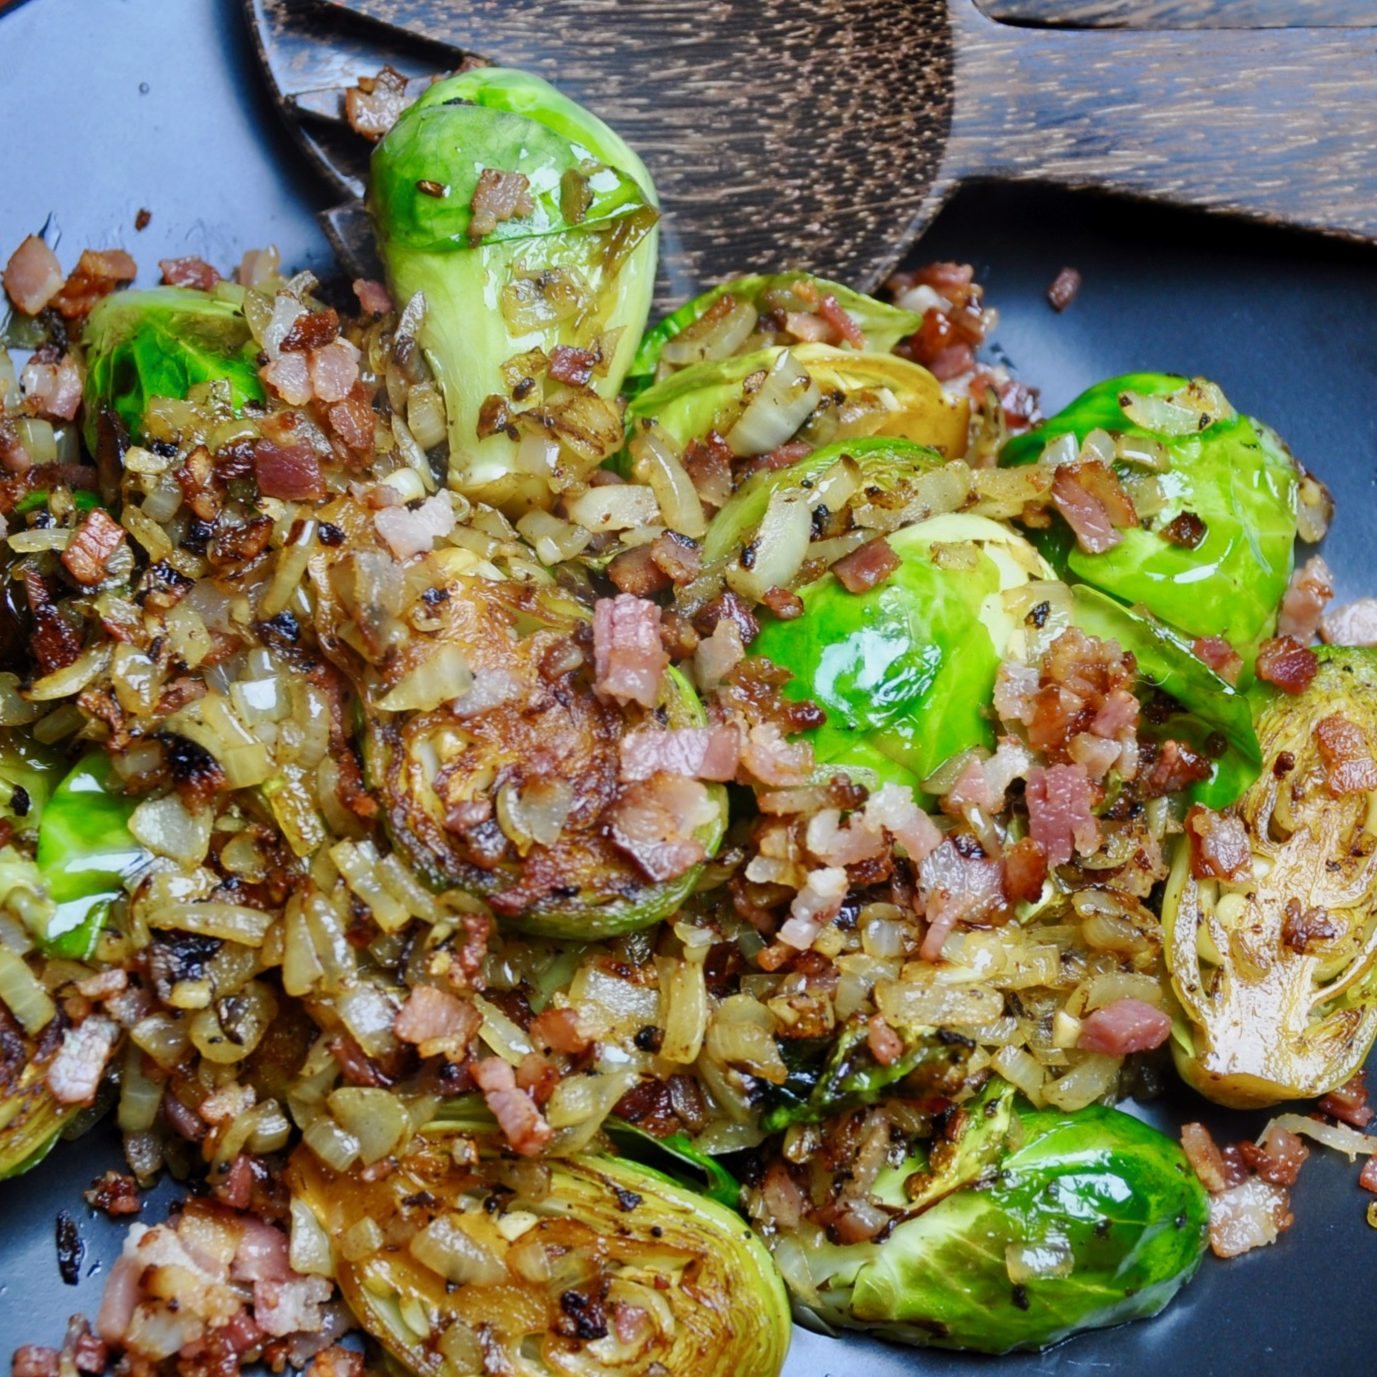 brussel sprouts sauteed with bacon, onion and garlic